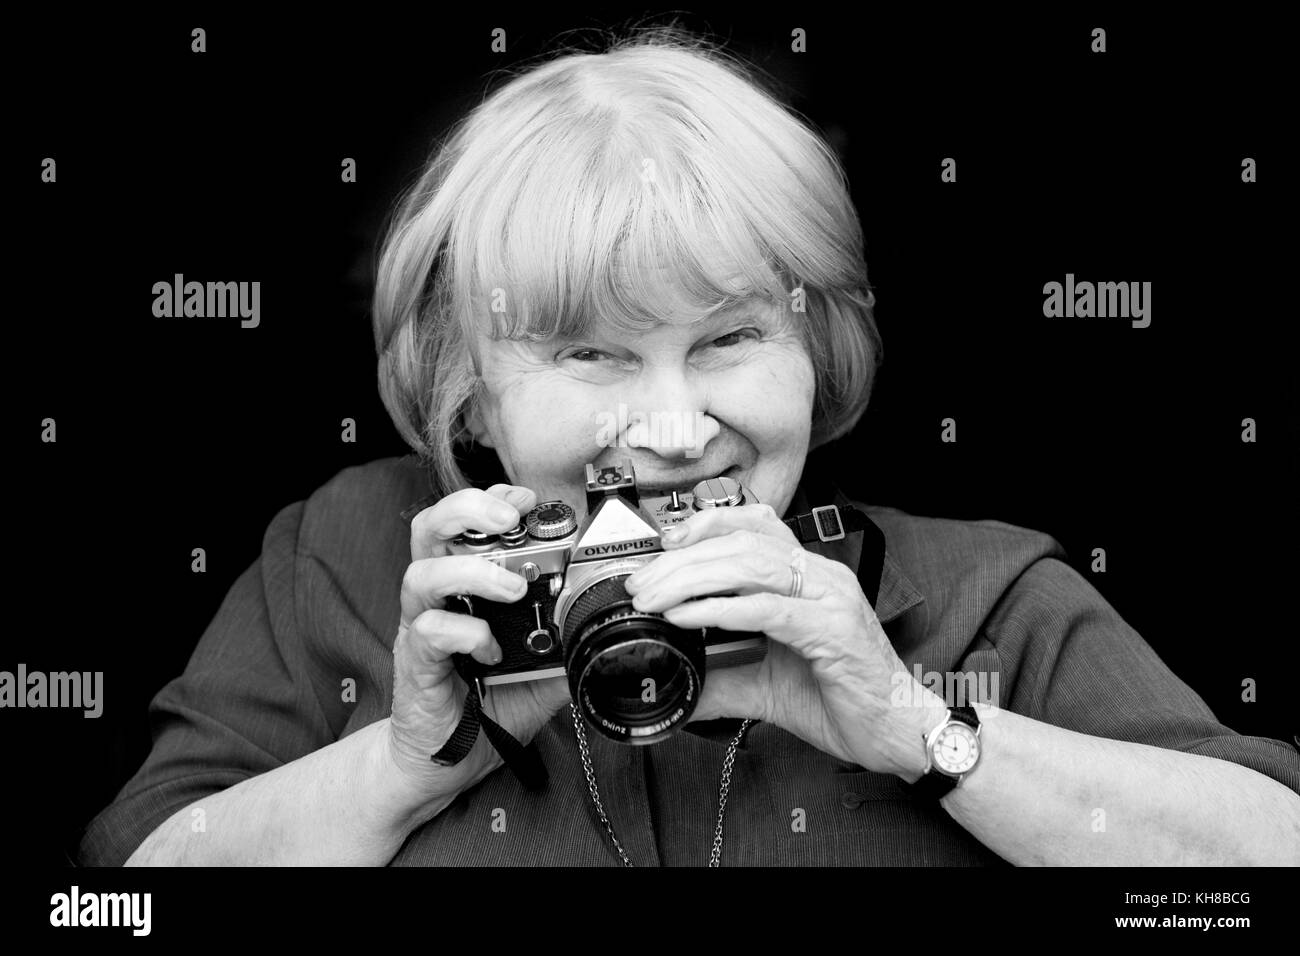 Photographer Jane Bown (13 March 1925 – 21 December 2014), B&W portrait holding camera - Stock Image